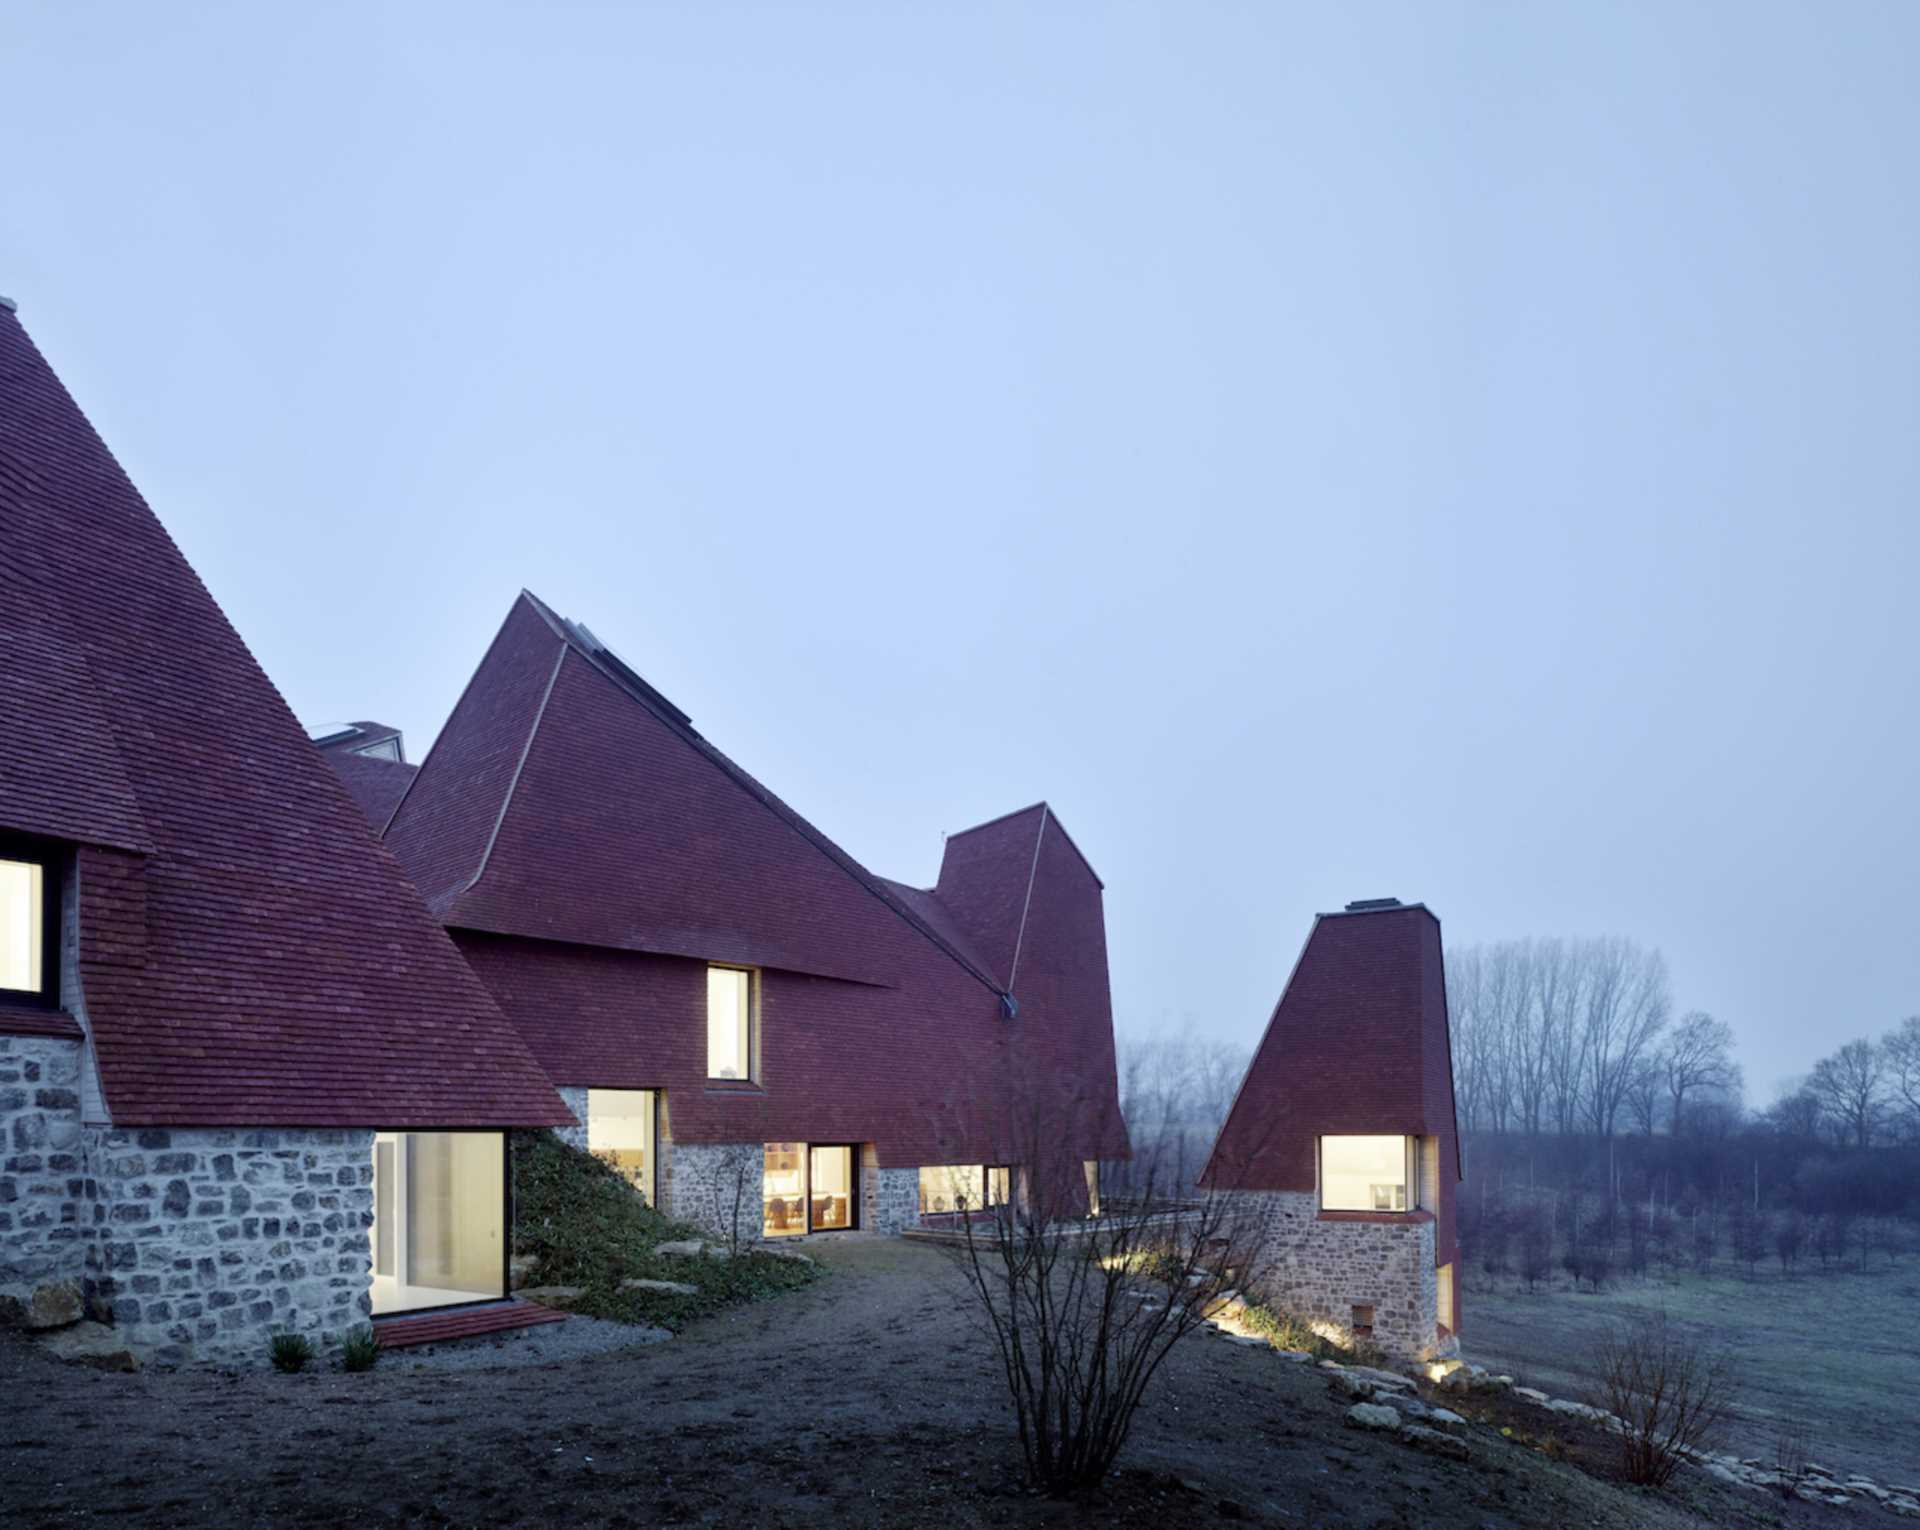 RIBA House of the Year 2017